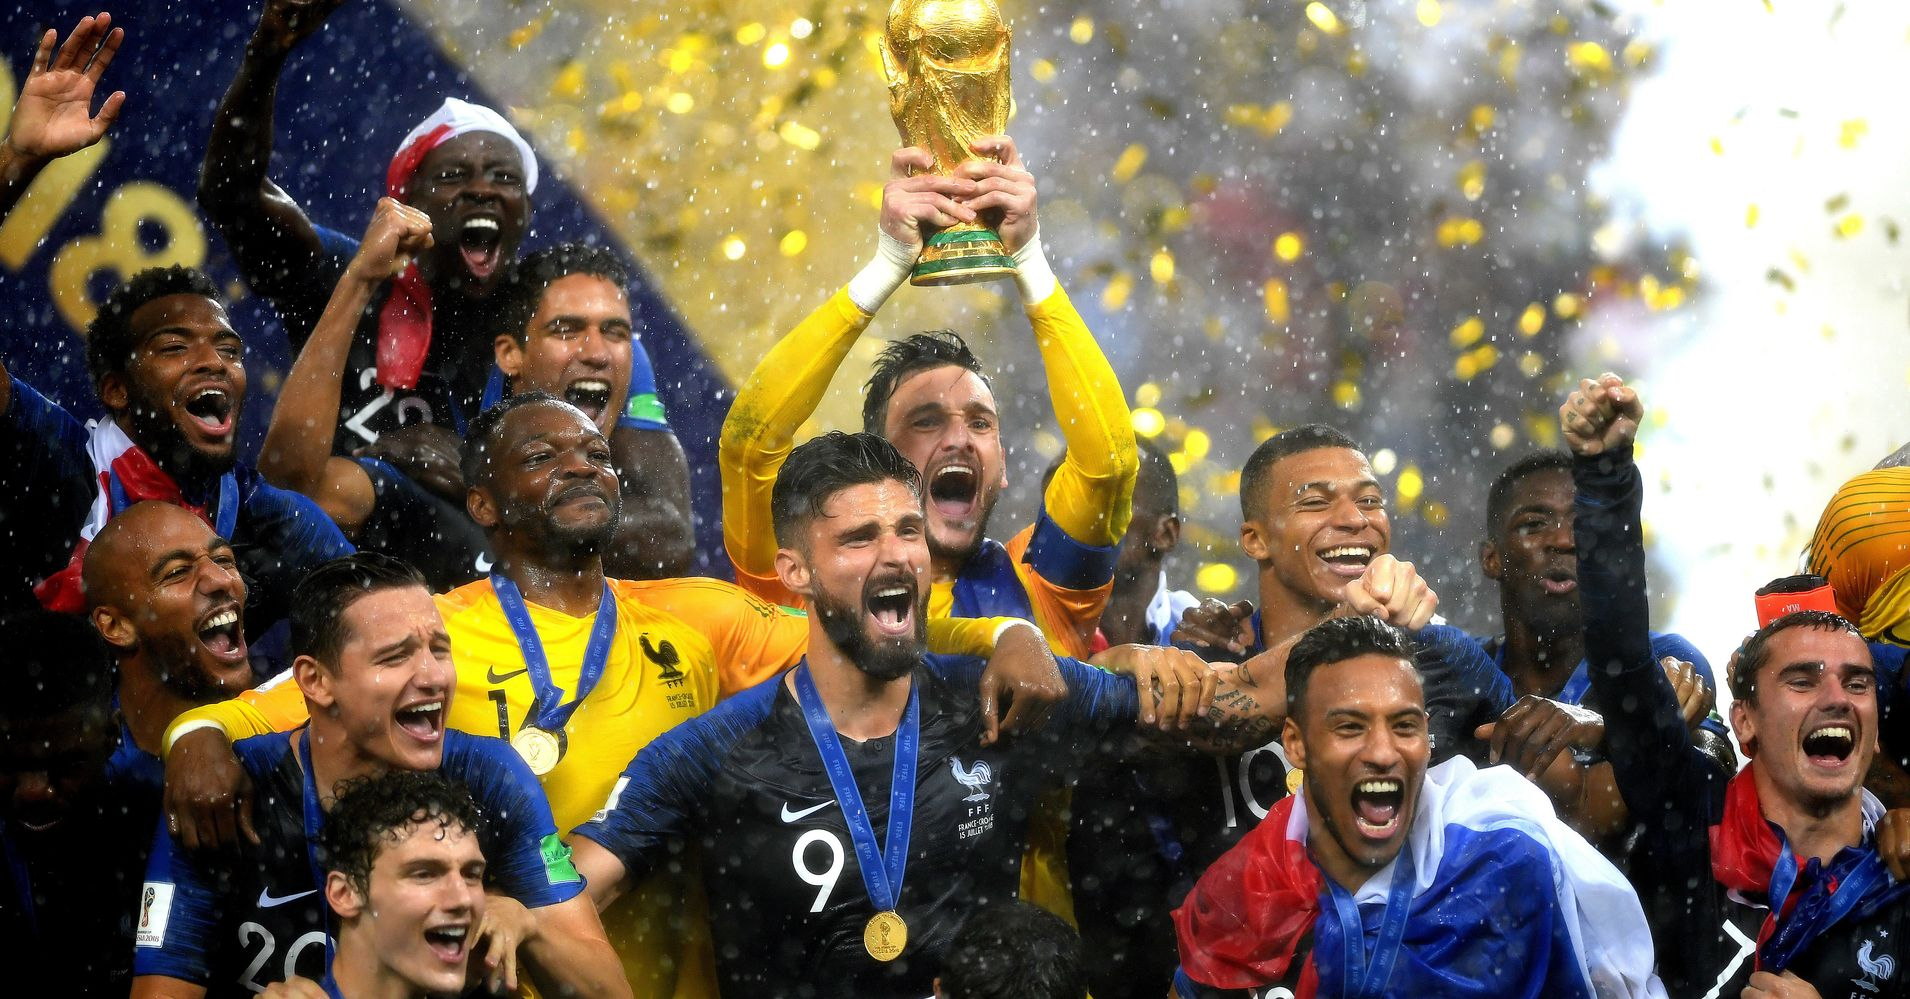 2018 World Cup Final: France Beats Croatia To Win Second Title